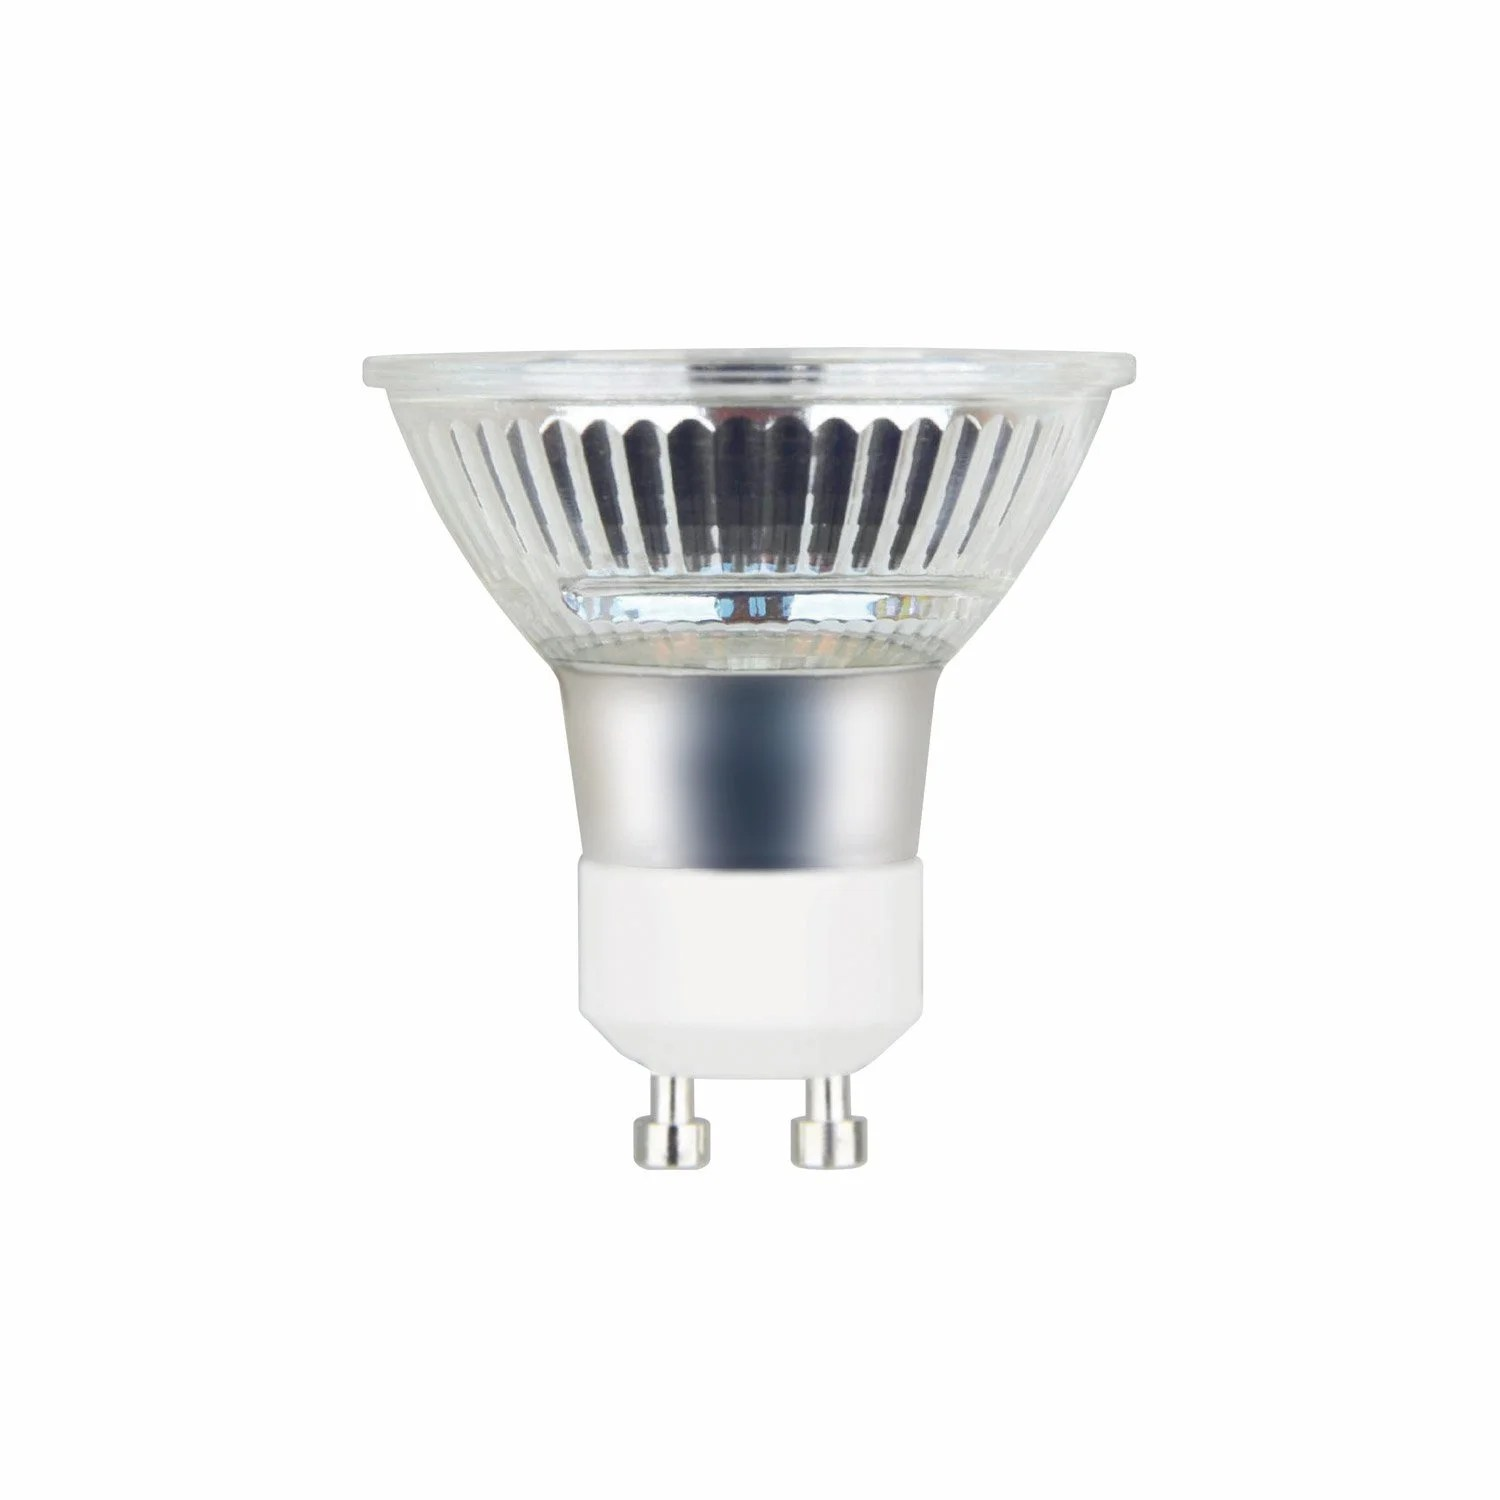 Ampoule Led Dimmable Ampoule Led Gu10 Dimmable Pour Spot 4w 460lm équiv 50w 2700k 100 Lexman